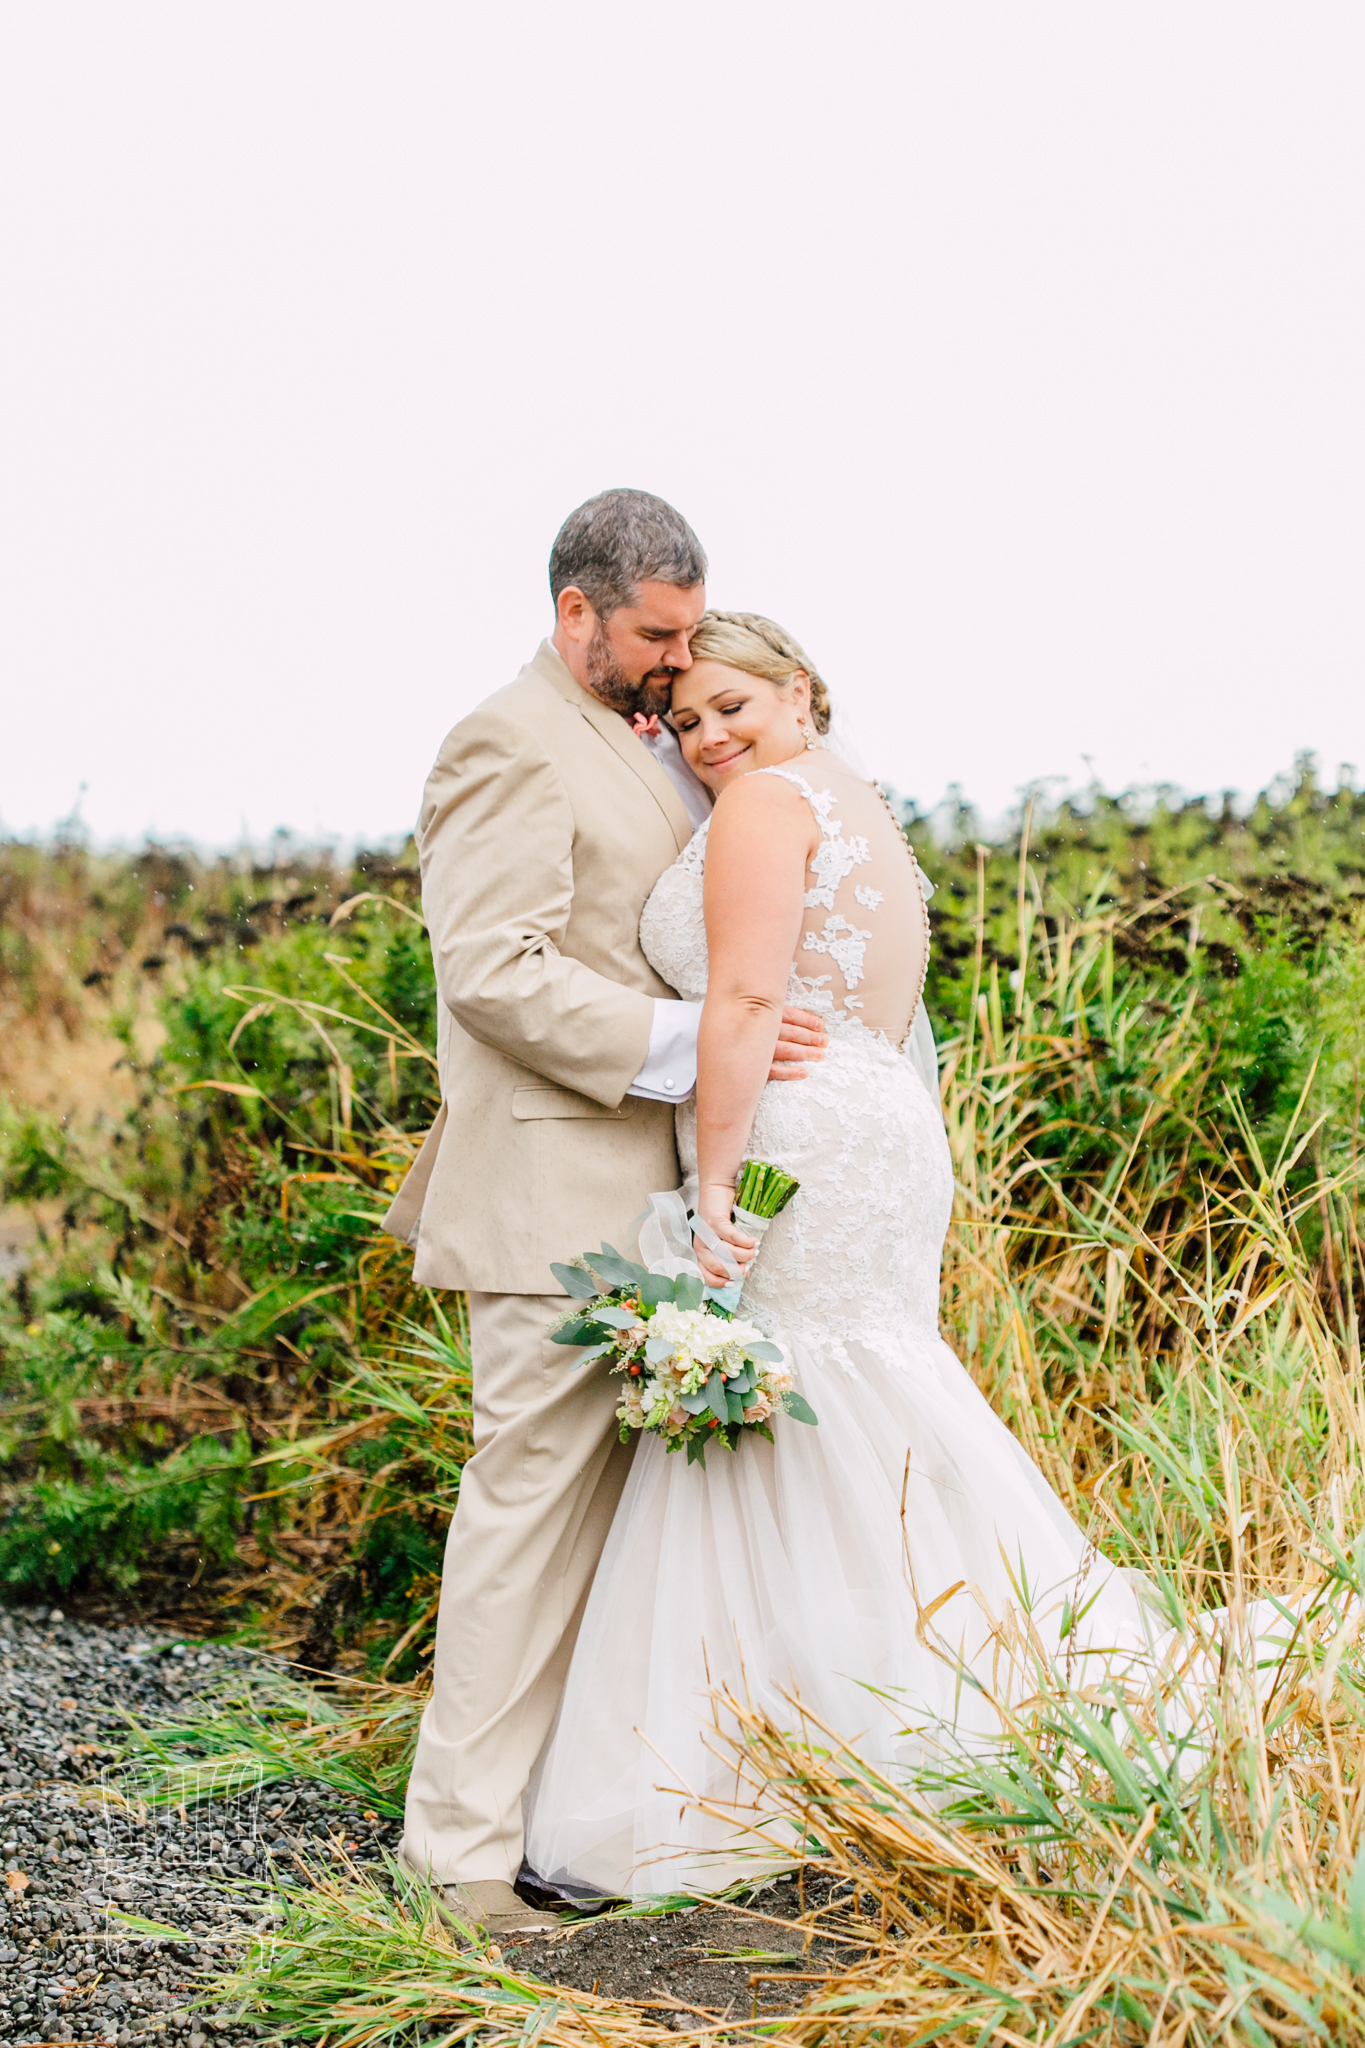 bellingham-bay-wedding-photographer-katheryn-moran-neptune-bay-ep-6.jpg